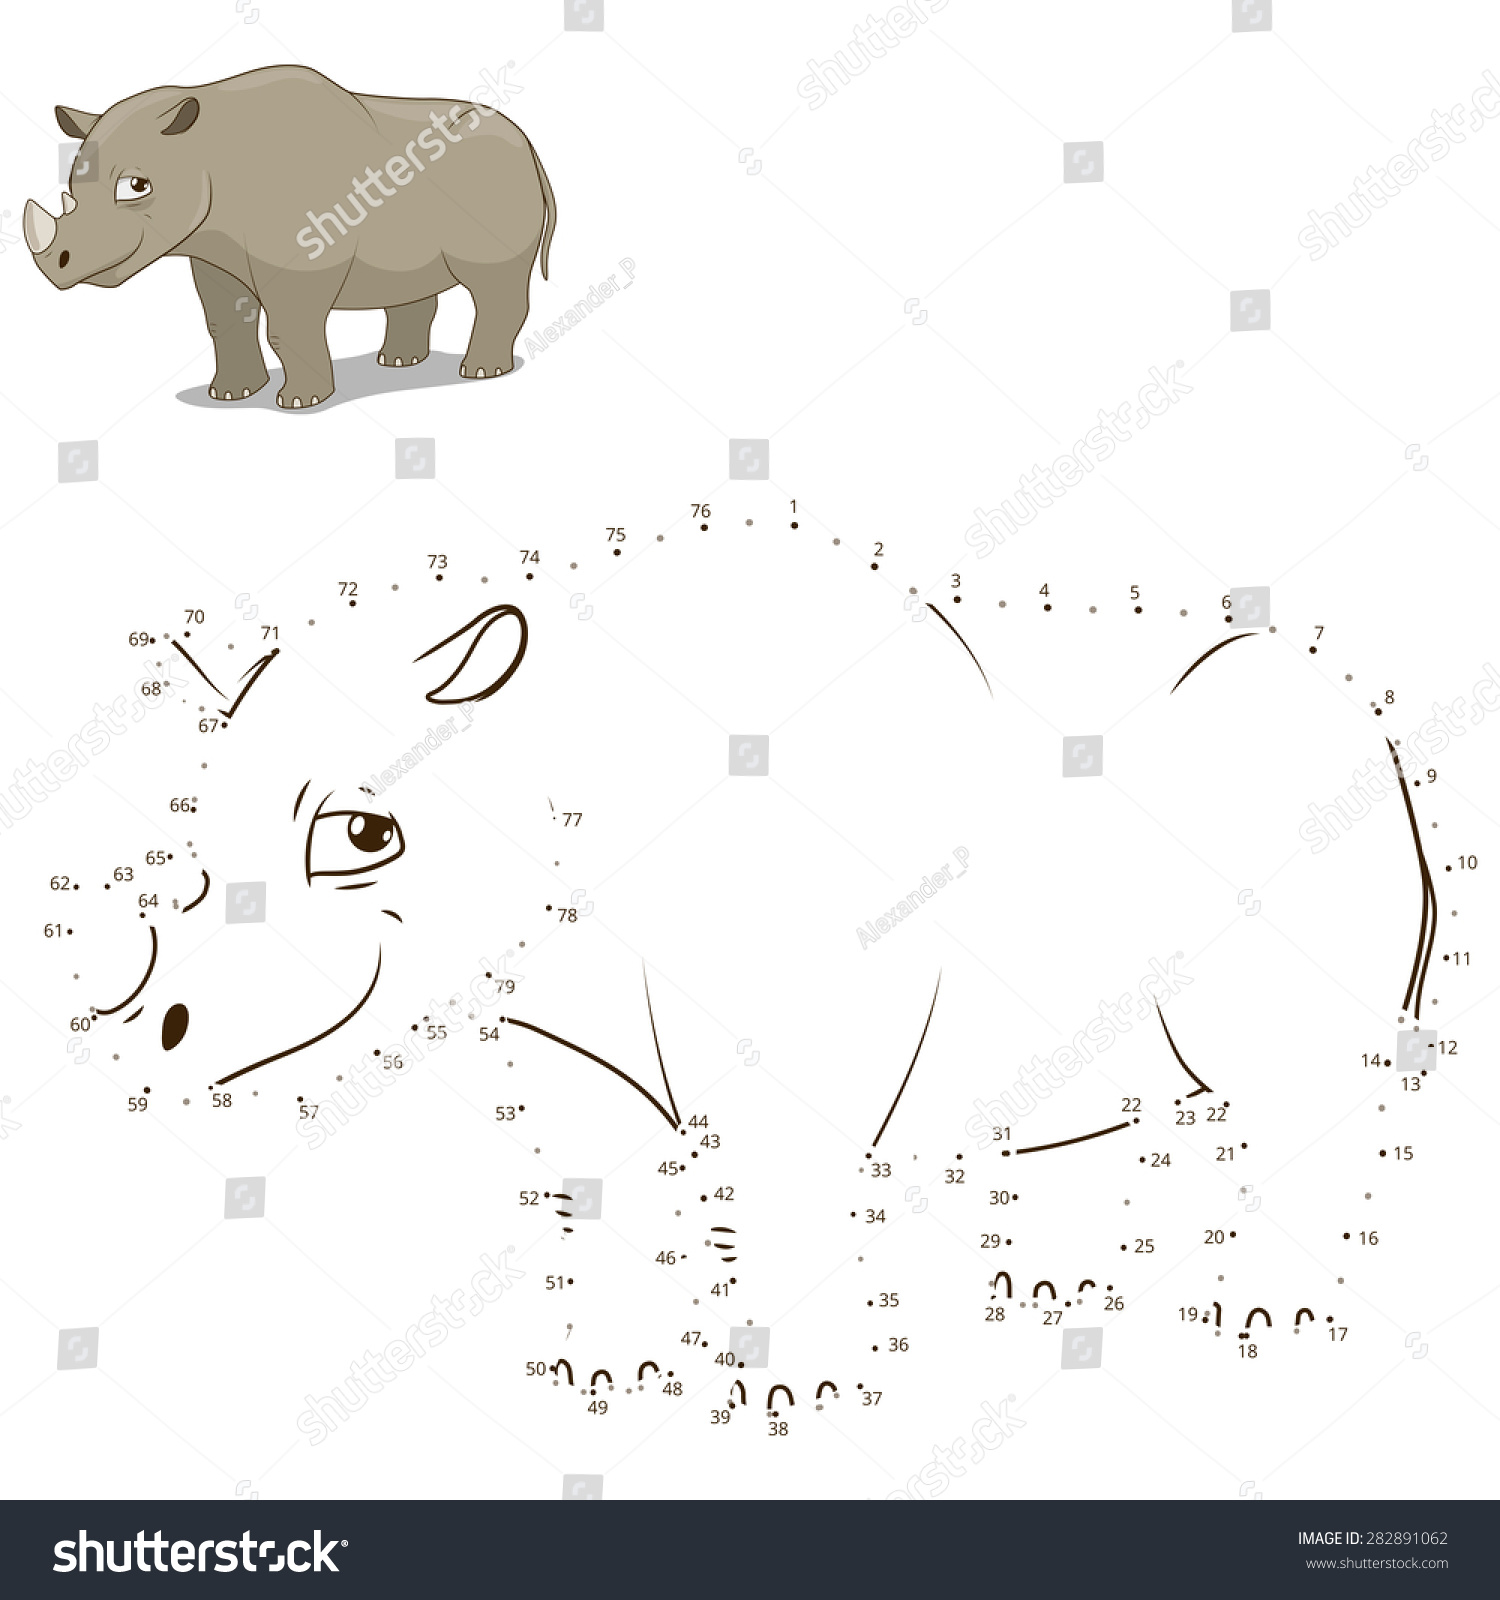 connect dots draw animal educational game stock vector 282891062